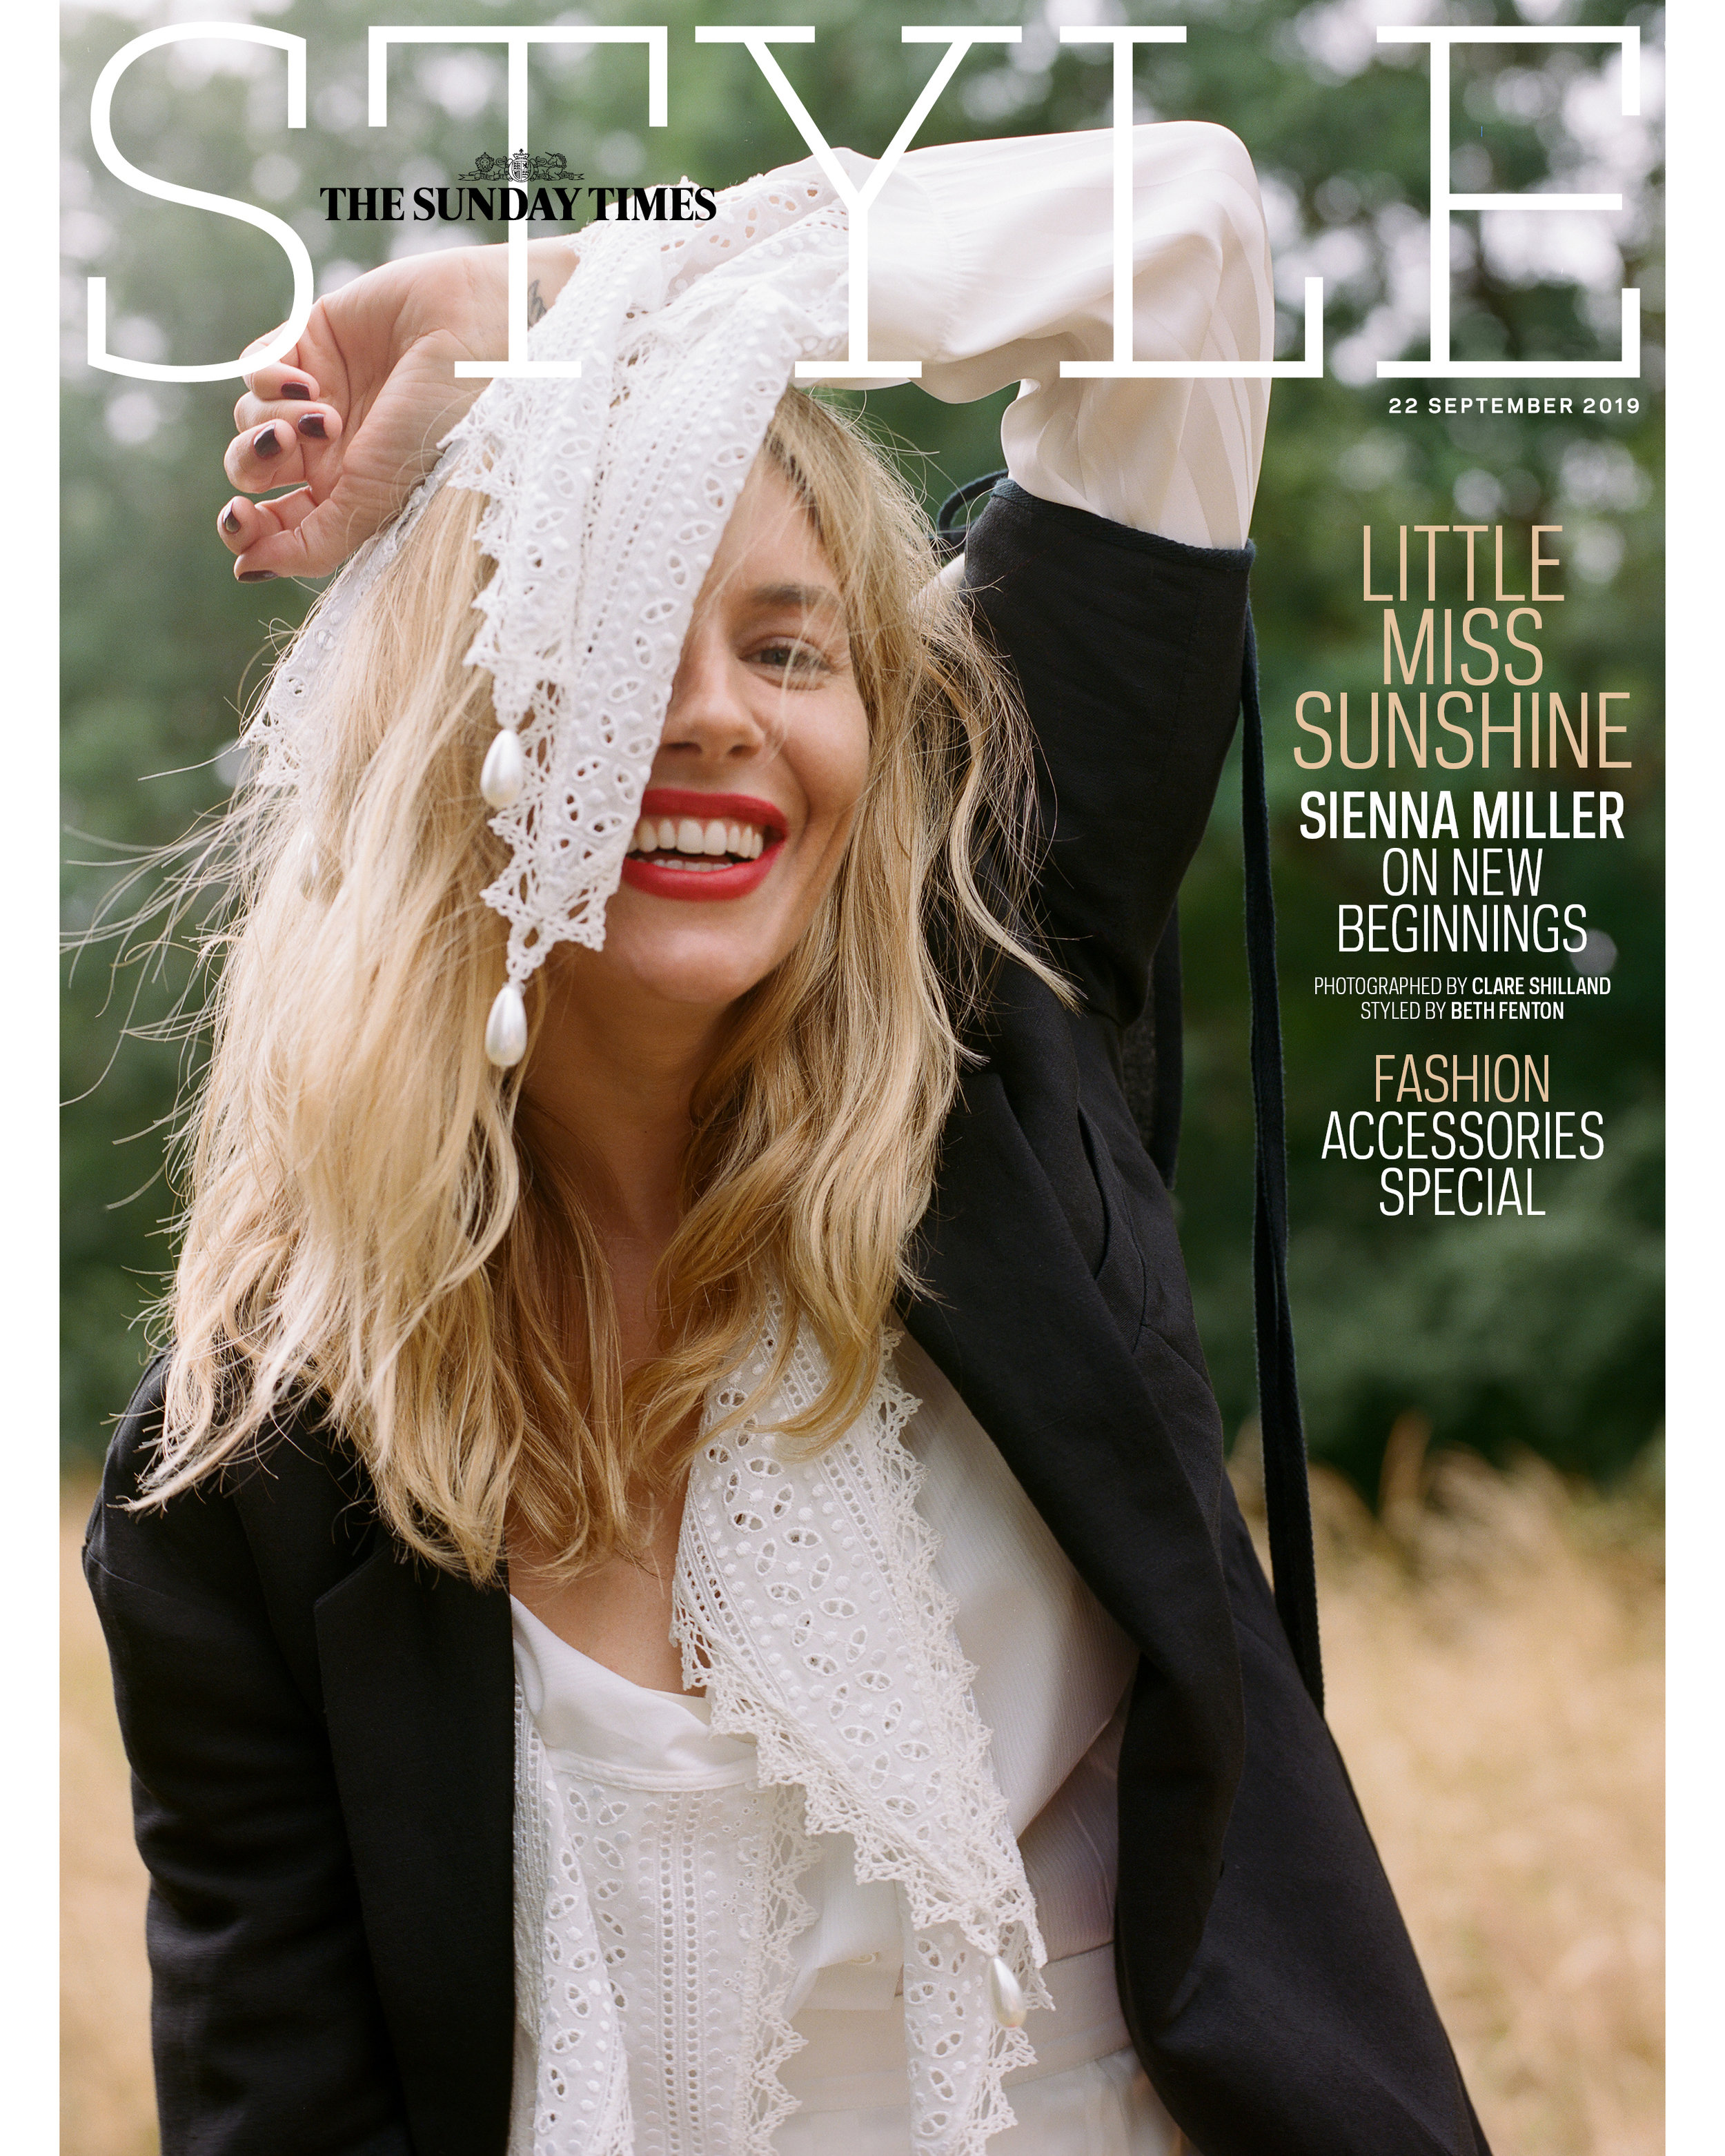 The Sunday Times STYLE 22nd September 2019